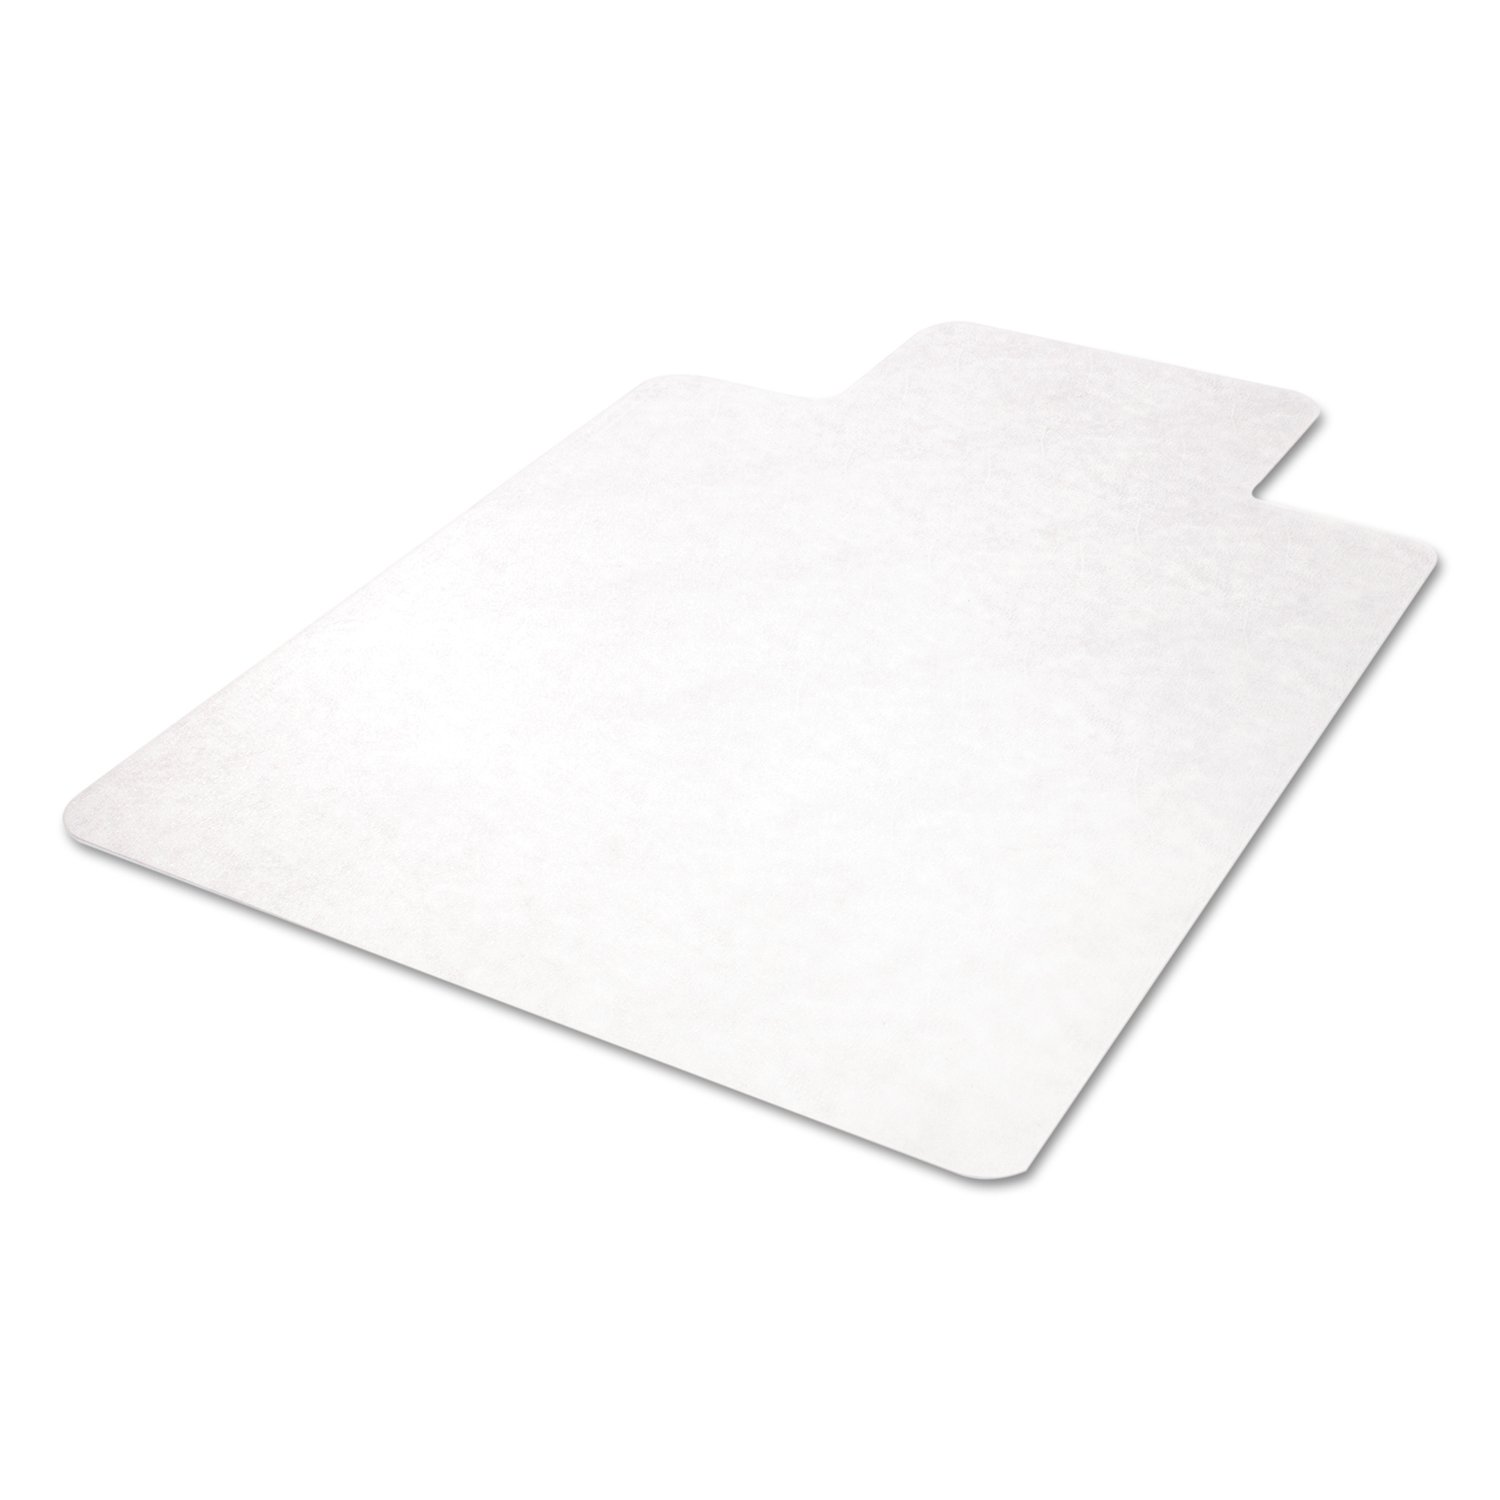 deflecto CM21232 45 x 53 w/Lip Clear EconoMat Anytime Use Chair Mat for Hard Floor